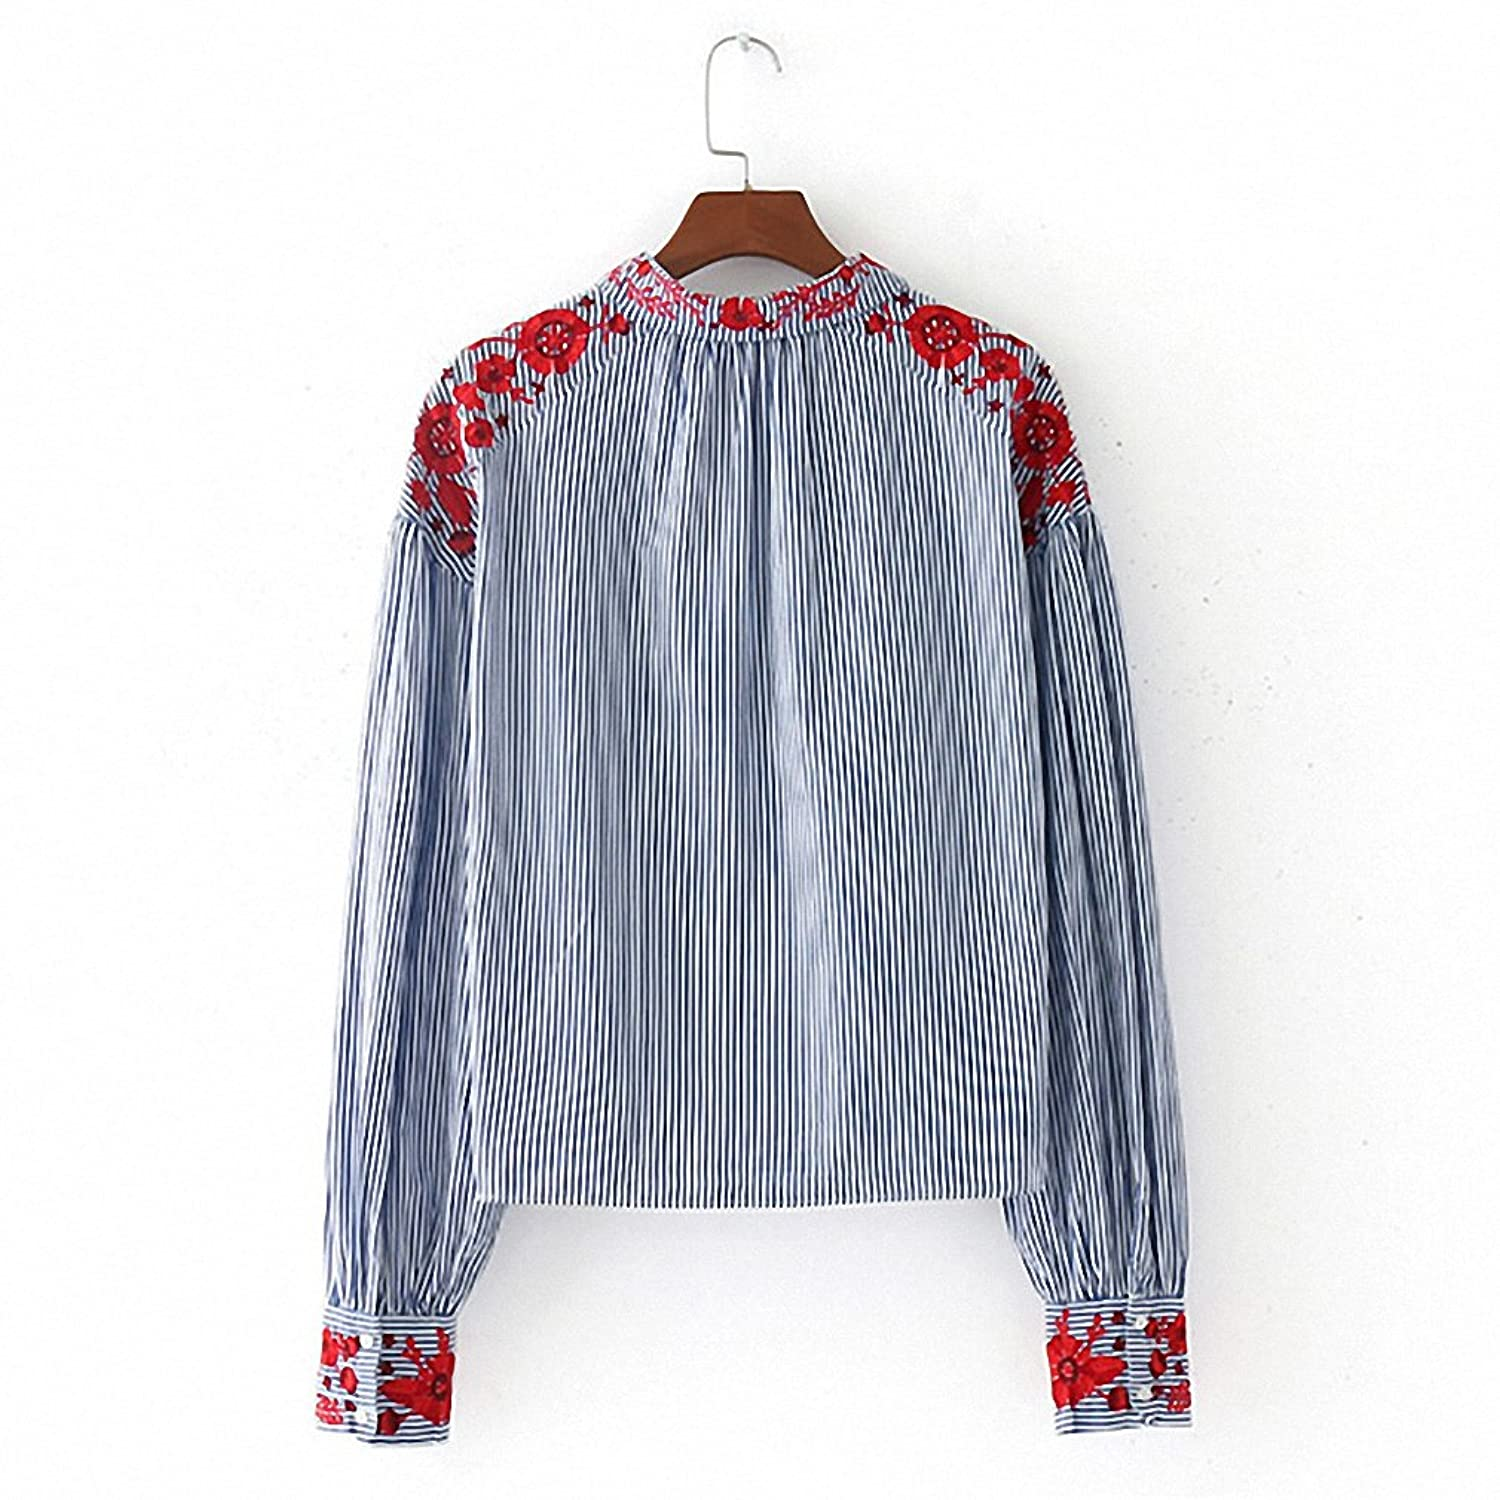 NEW Women Vintage Striped Floral Embroidery Shirt Long Sleeve Lapel Blouse Female Casual Streetwear Top Blusas Camisas Feminina As Show L at Amazon Womens ...